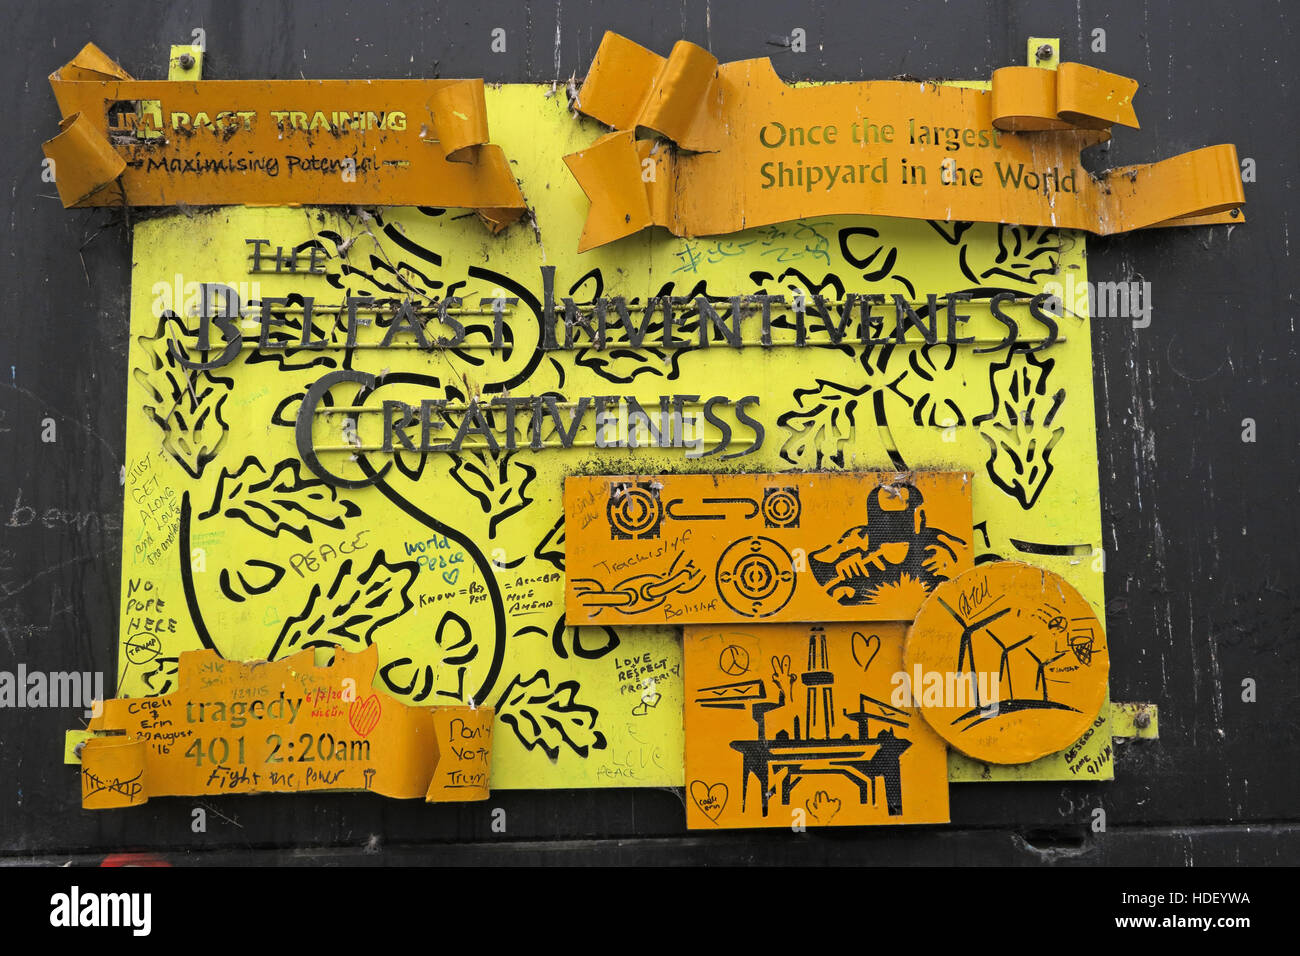 Belfast Inventiveness - International Peace Wall,Cupar Way,West Belfast , Northern Ireland, UK - Stock Image